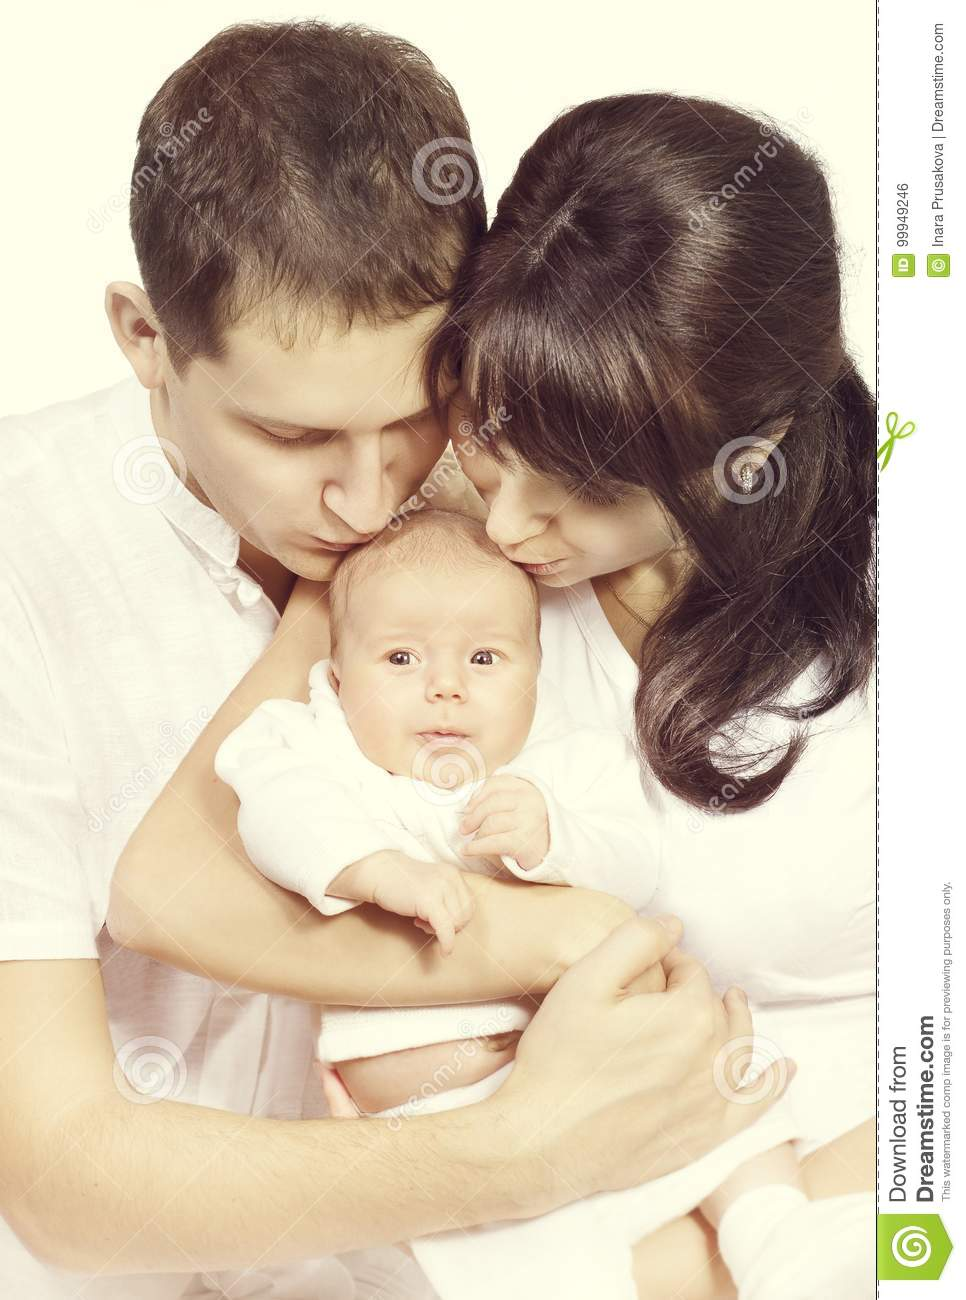 Family Kiss Newborn Baby, Mother and Father Kissing New Born Chi